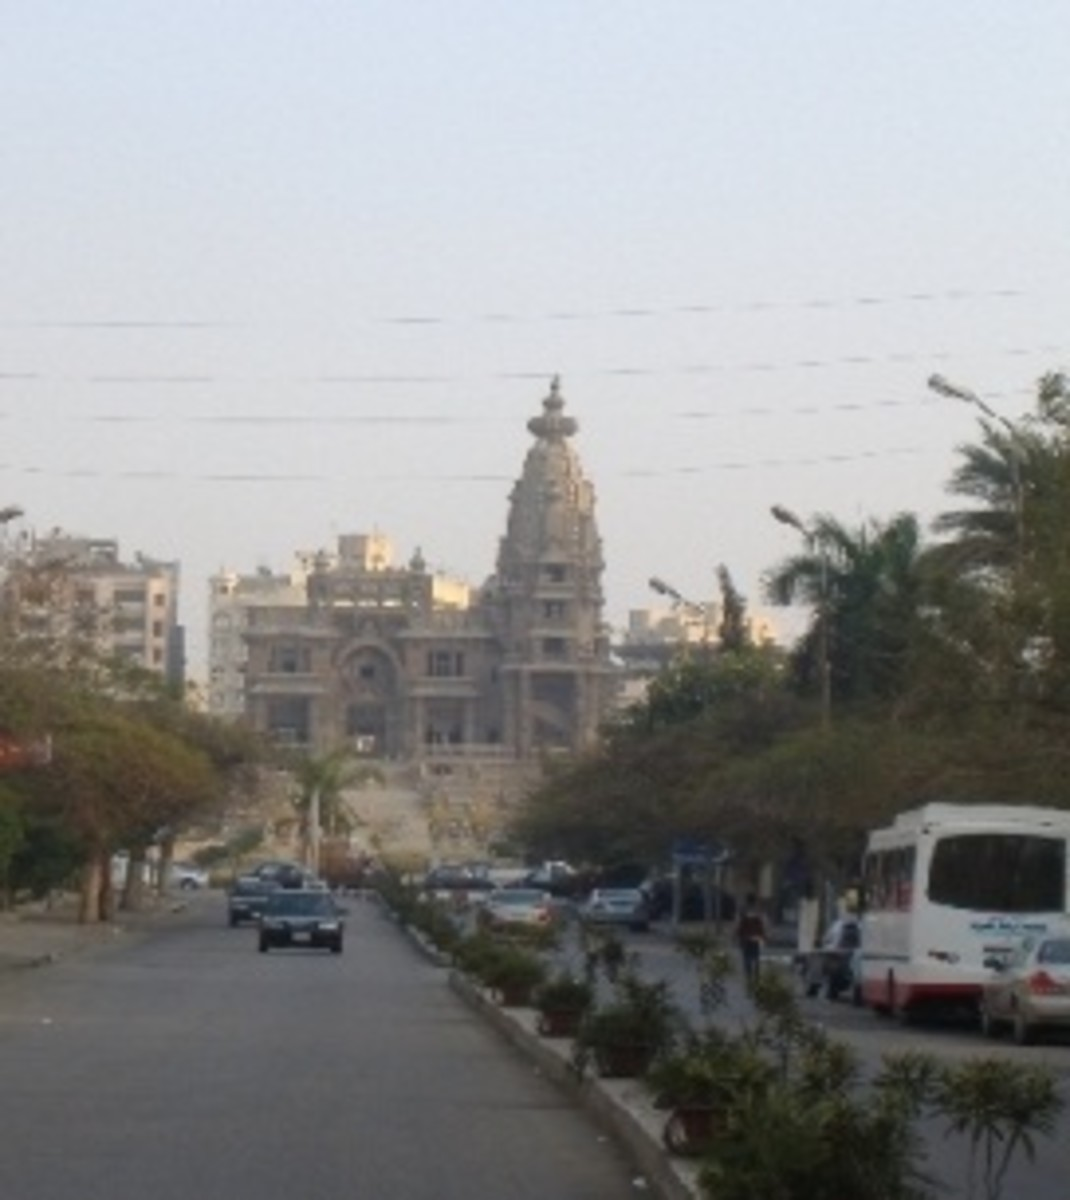 Baron Empain Palace in Heliopolis